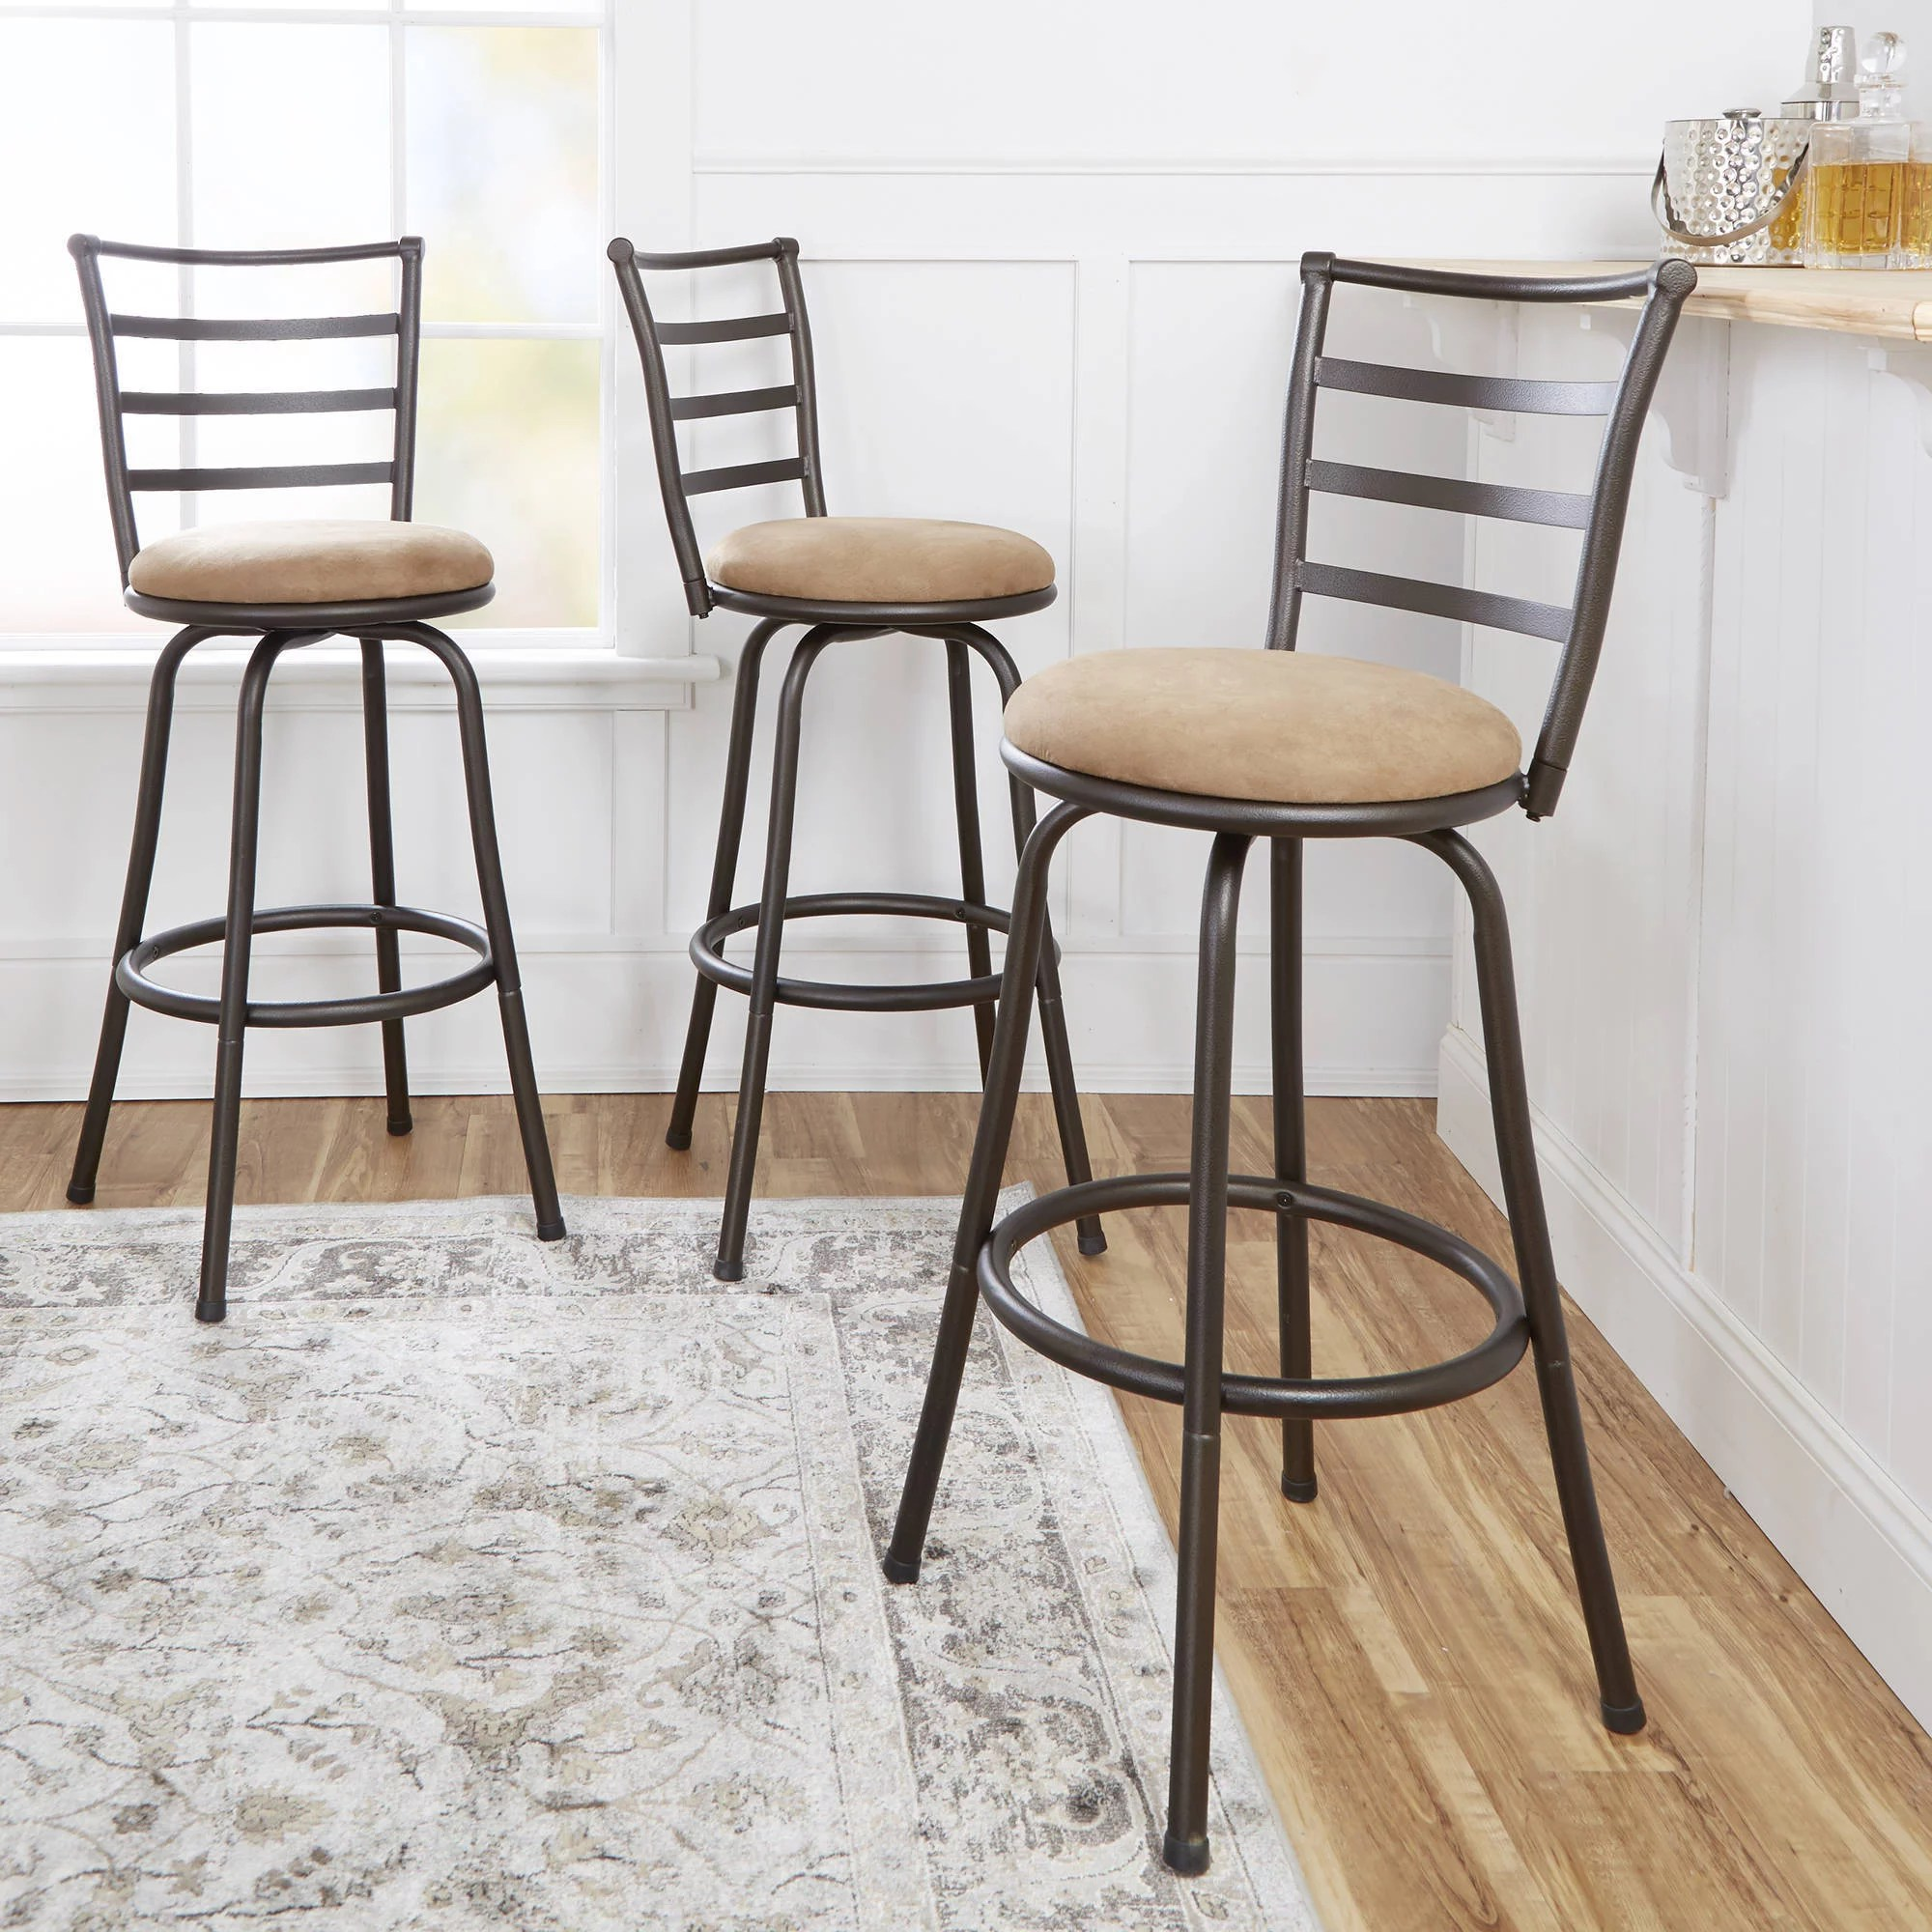 28 Barstools Mainstays Adjustable Height Swivel Barstool Hammered Bronze Finish Set Of 3